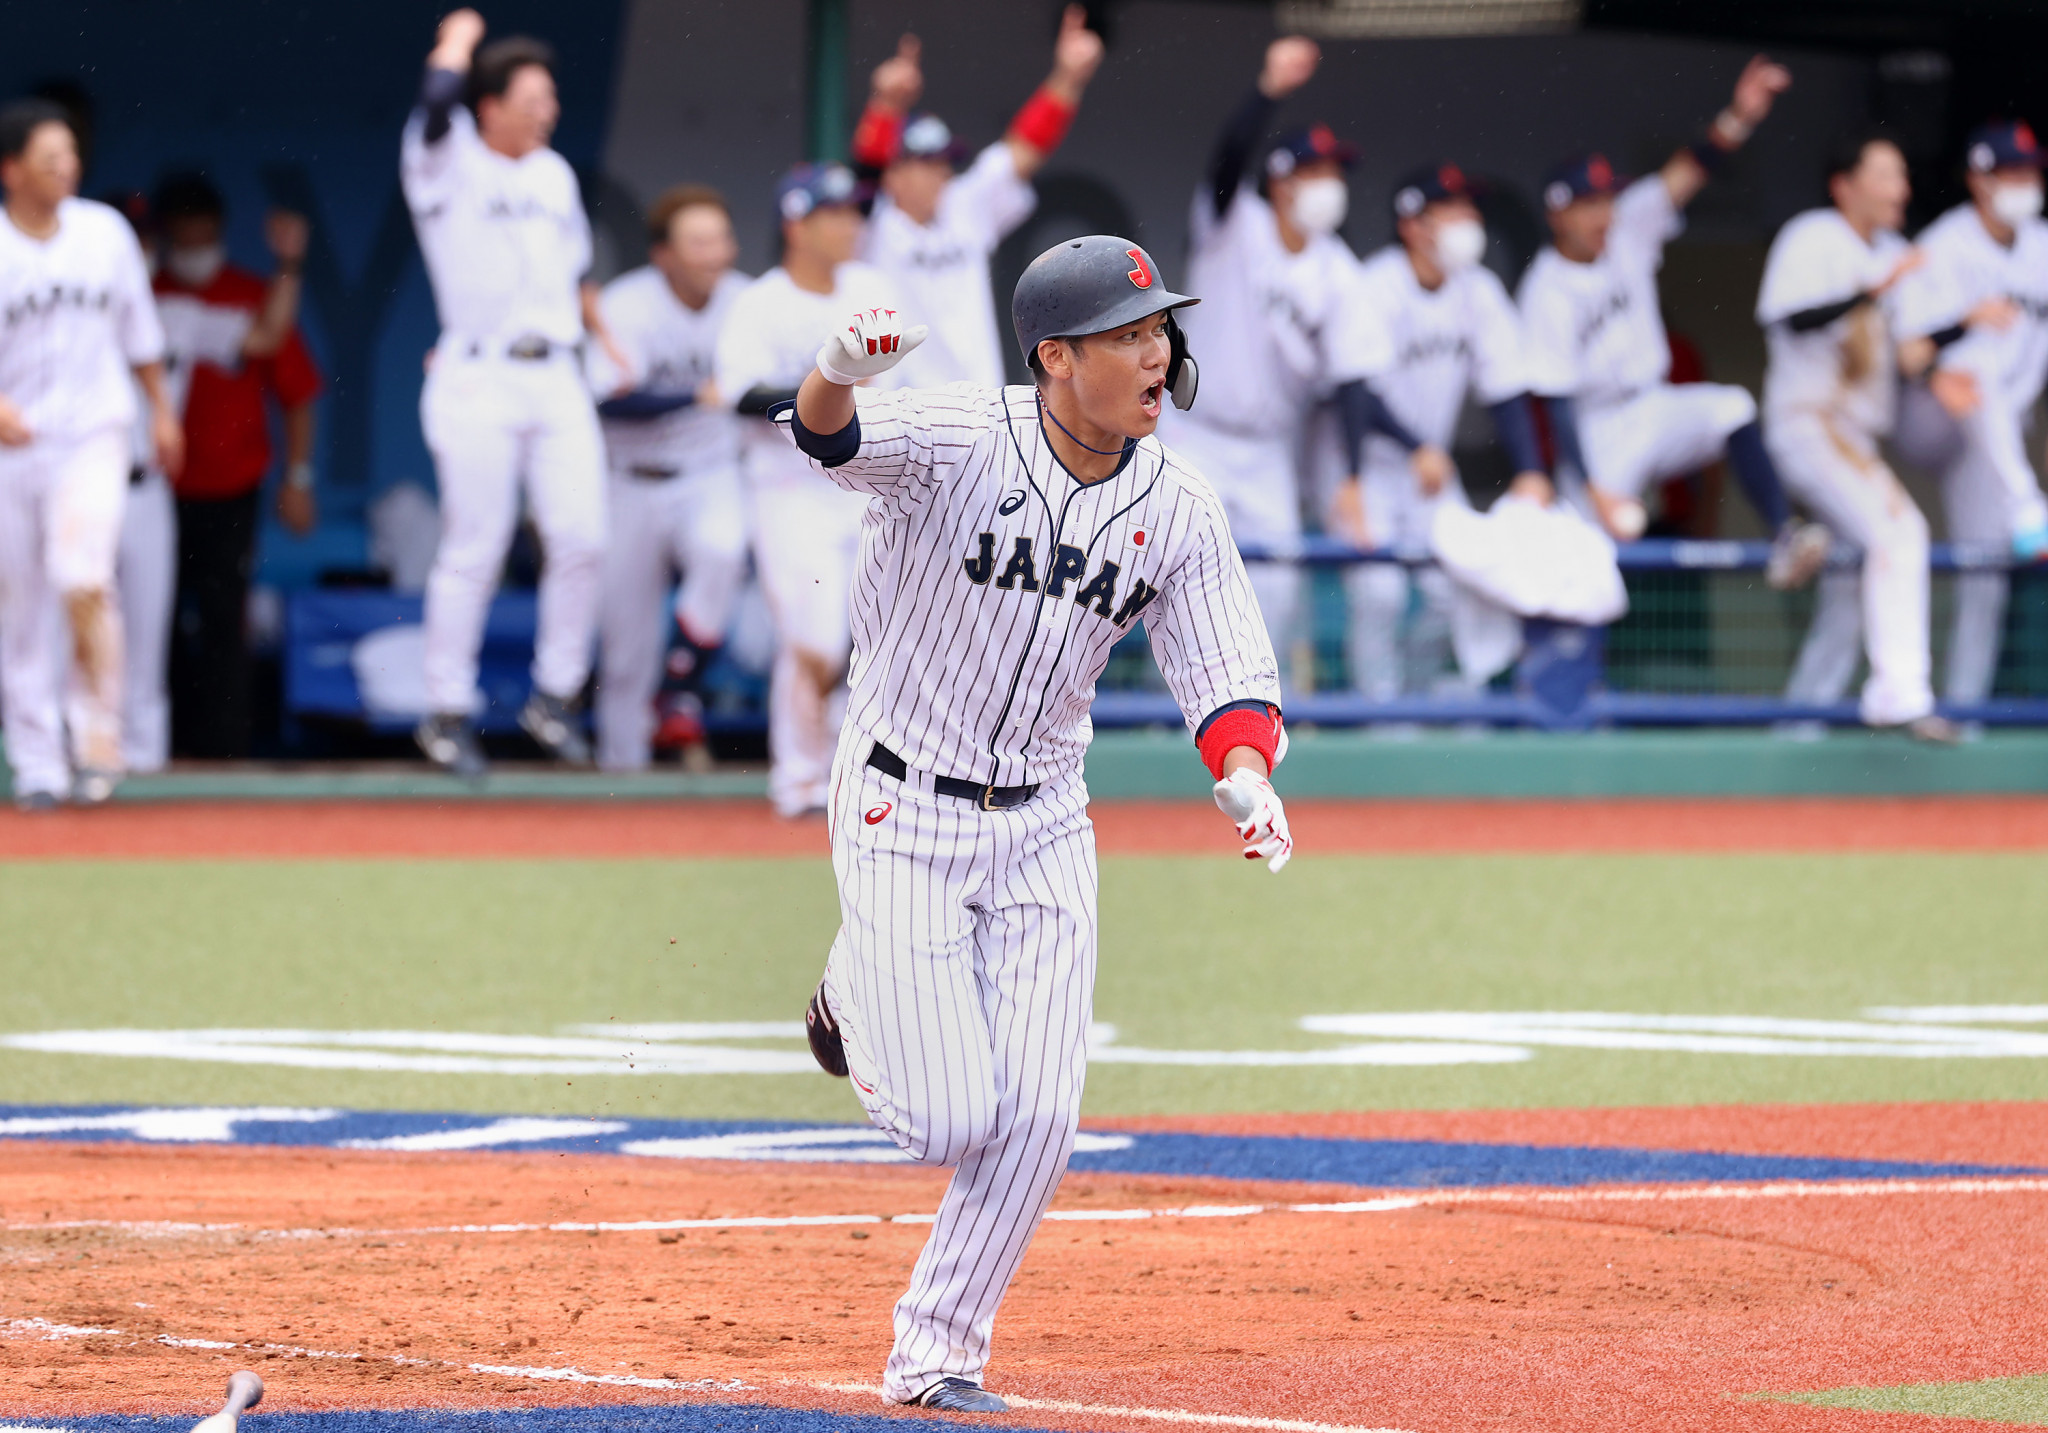 The first Olympic baseball game in 13 years was an instant classic, as Japan scored three runs in the bottom of the ninth inning to beat the Dominican Republic, with Hayato Sakamoto driving home the winning run ©Getty Images